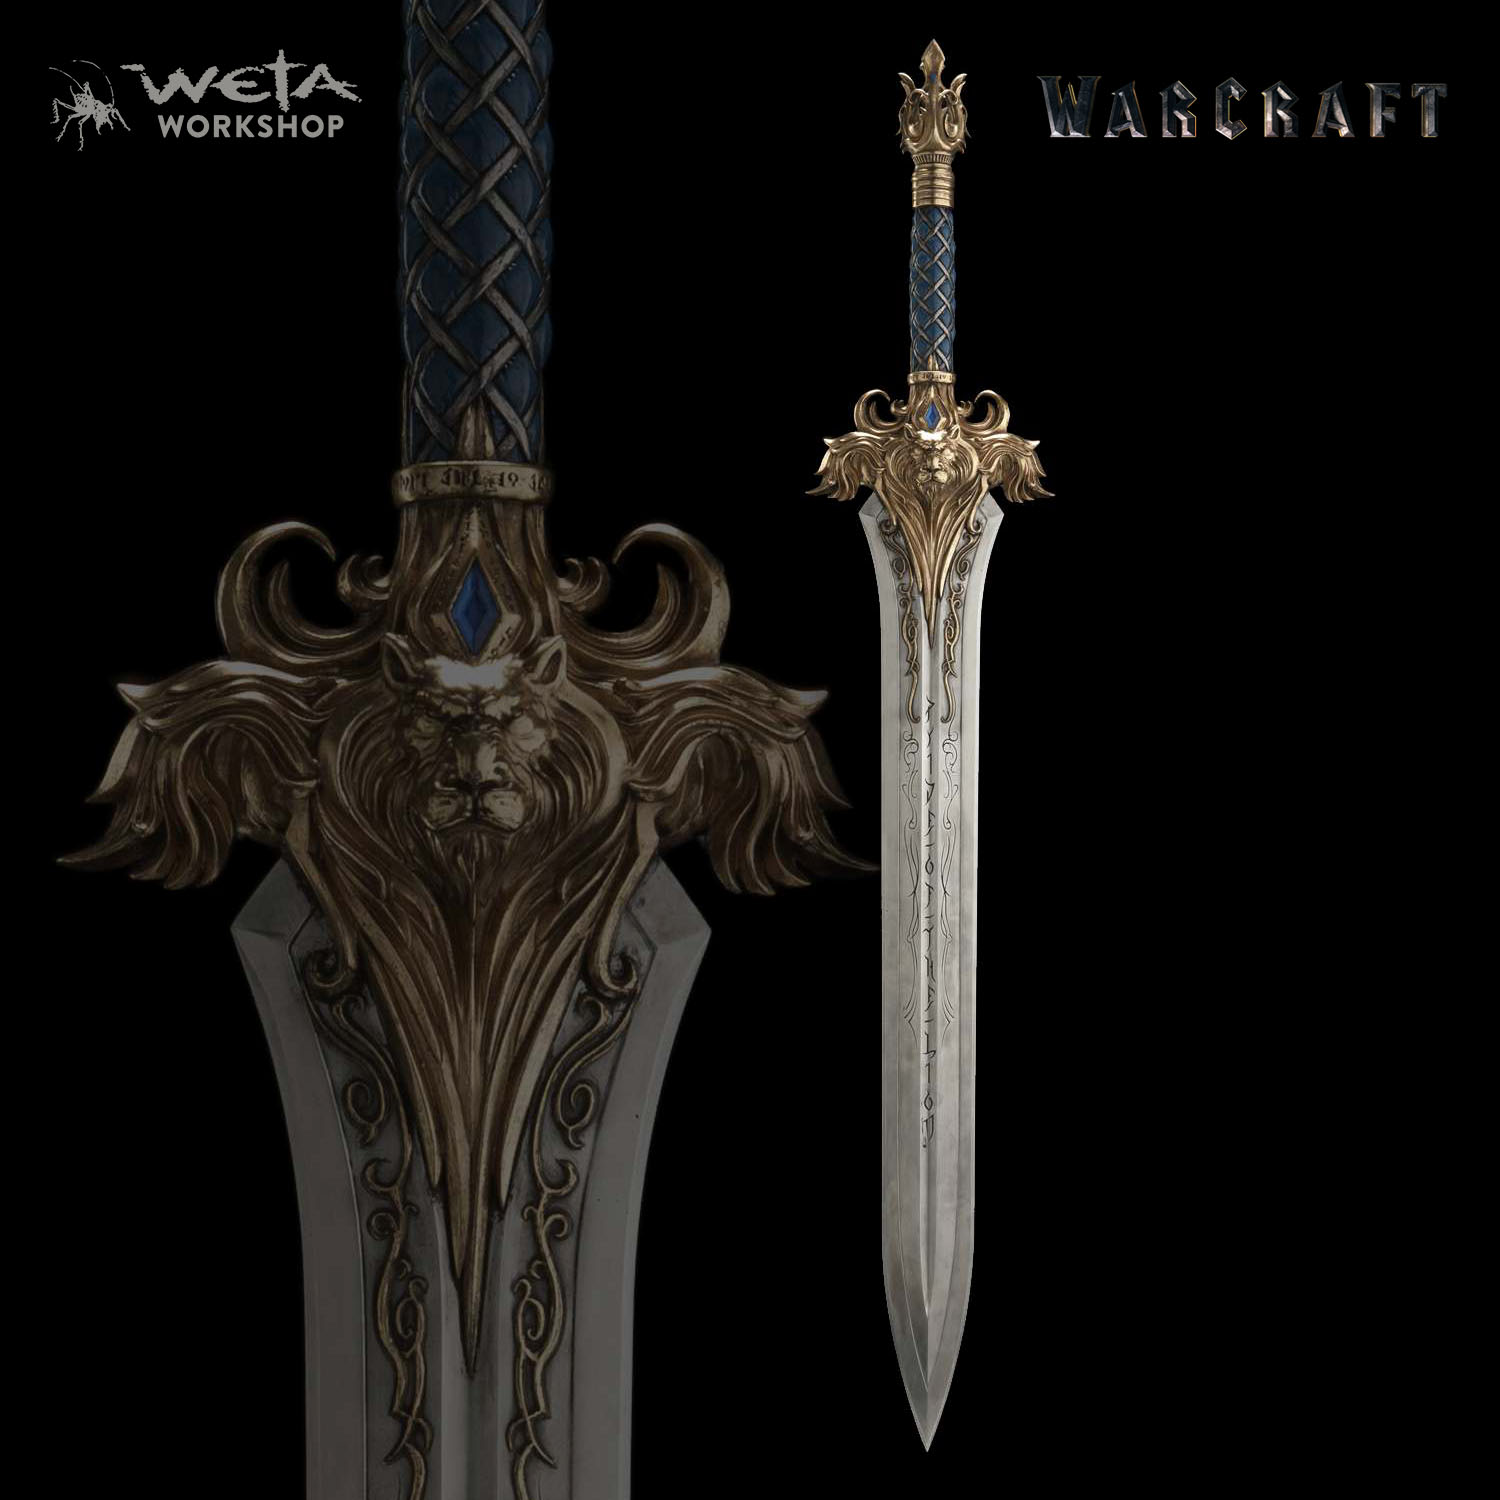 Weta unveils their own line of warcraft movie collectibles for Newspaper wallpaper for sale